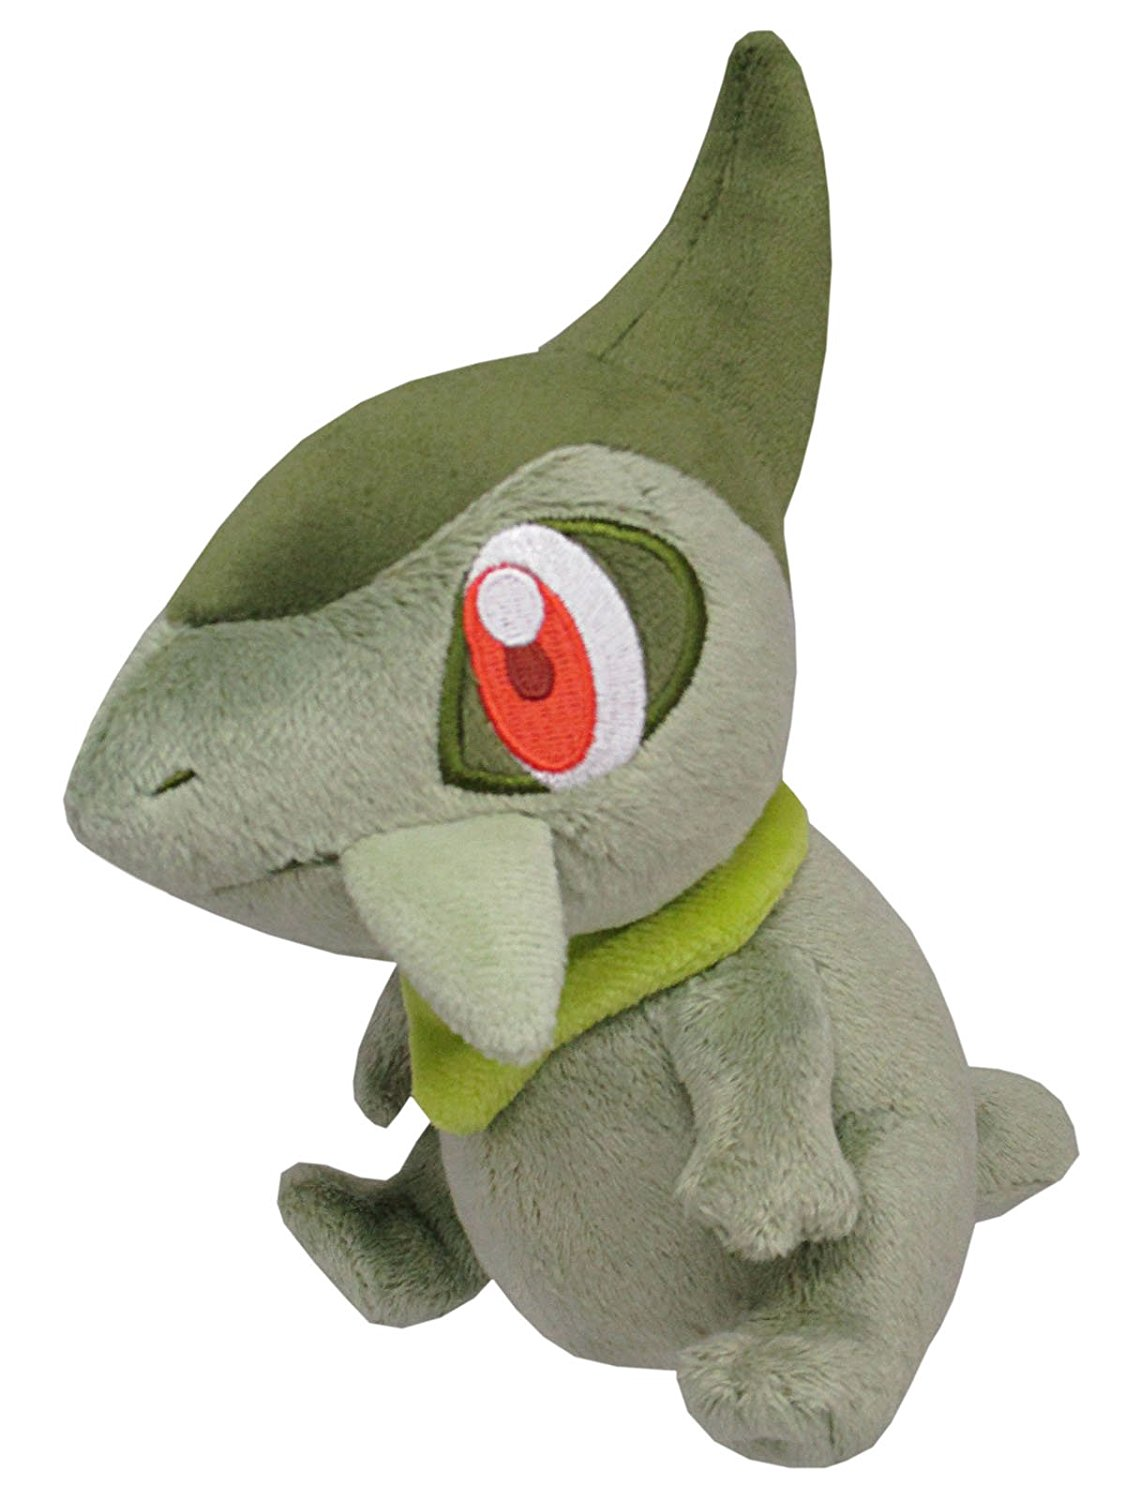 Japanese Pokemon Axew 7.5 Plush PP49